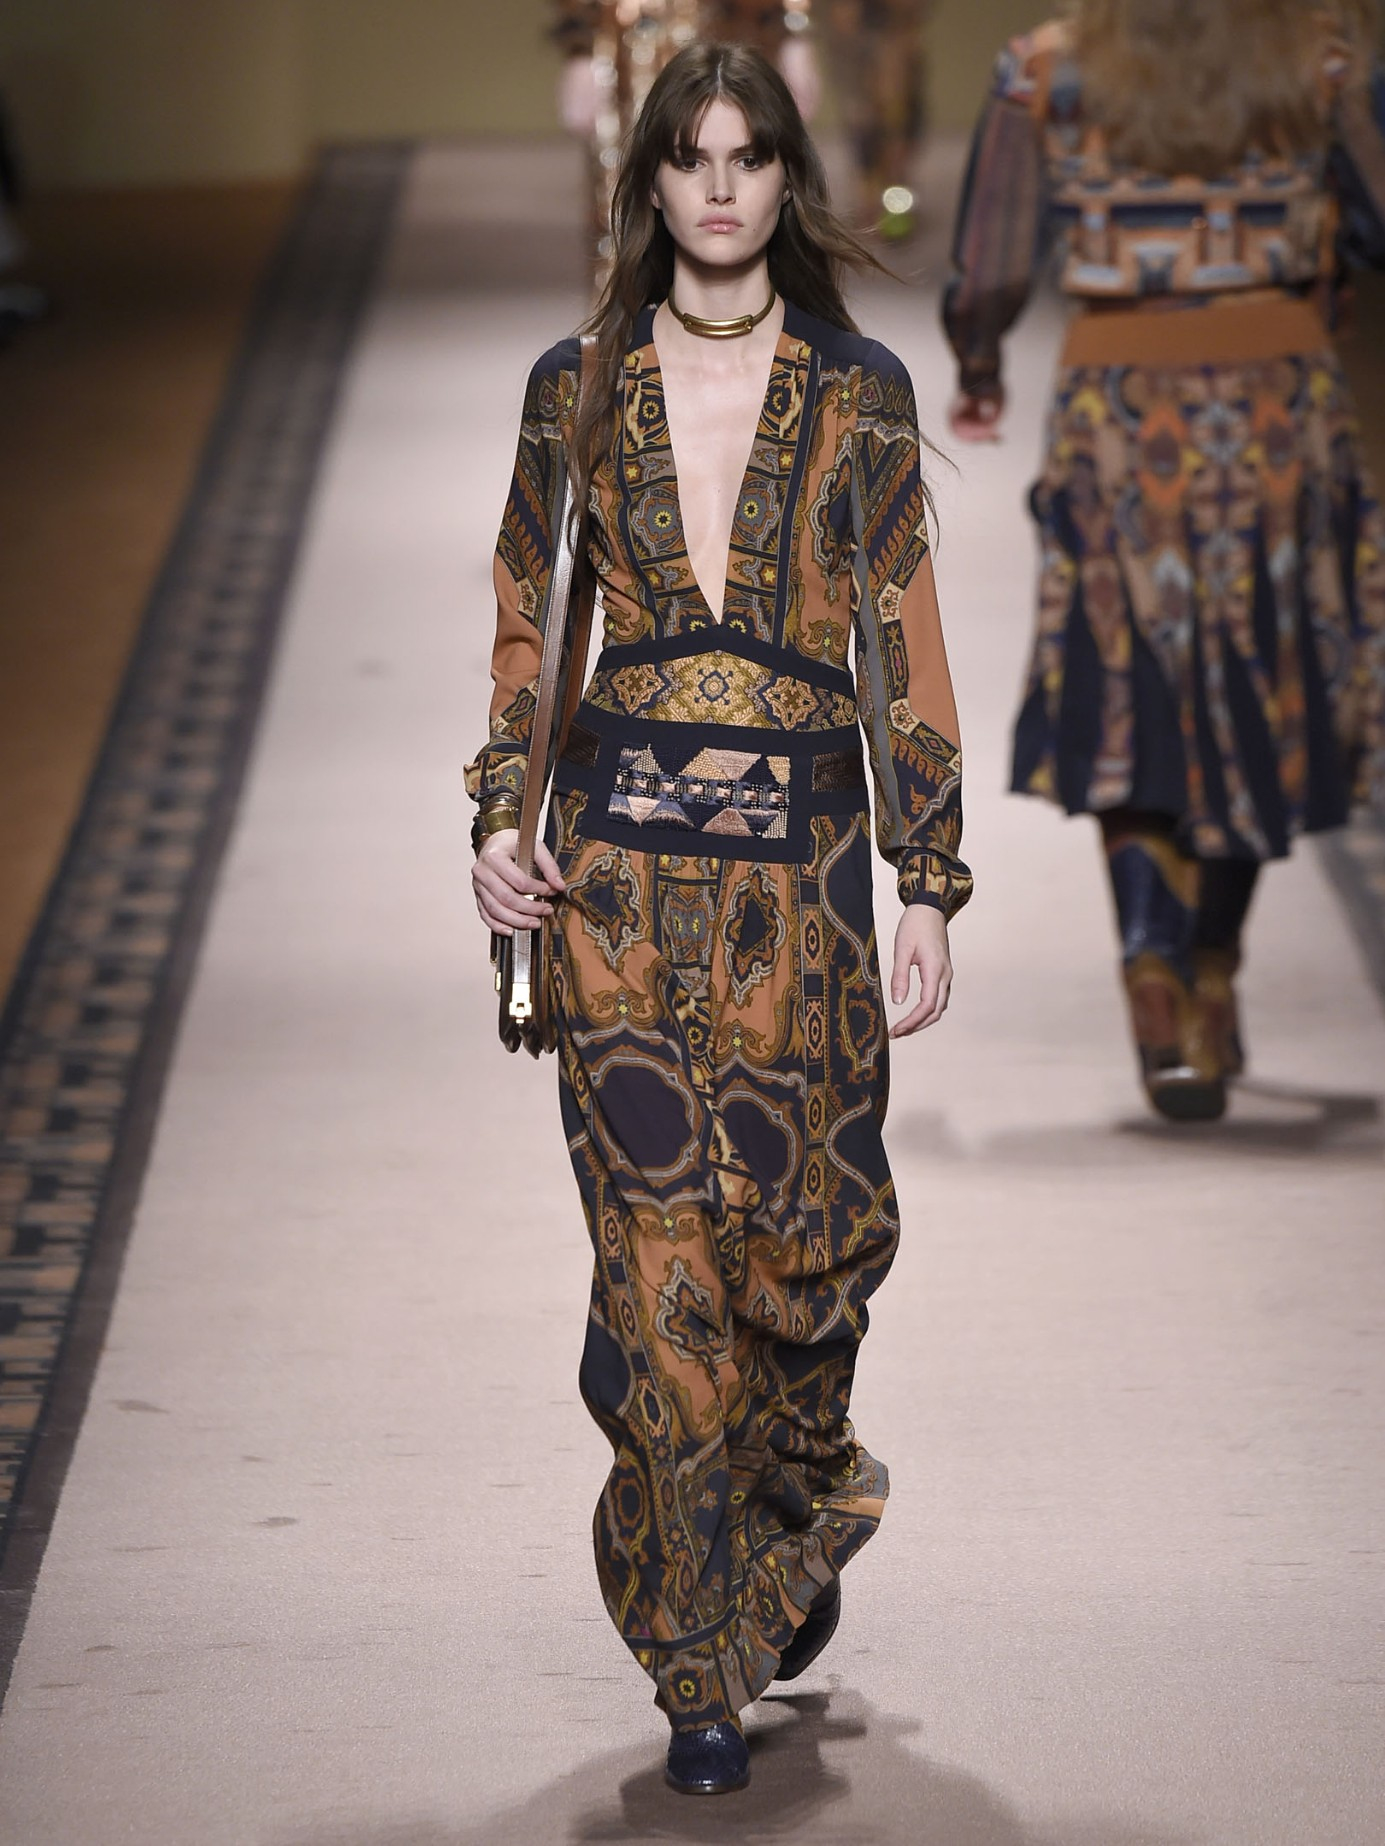 Lyst - Etro Embroidered Paisley-Print Gown in Brown